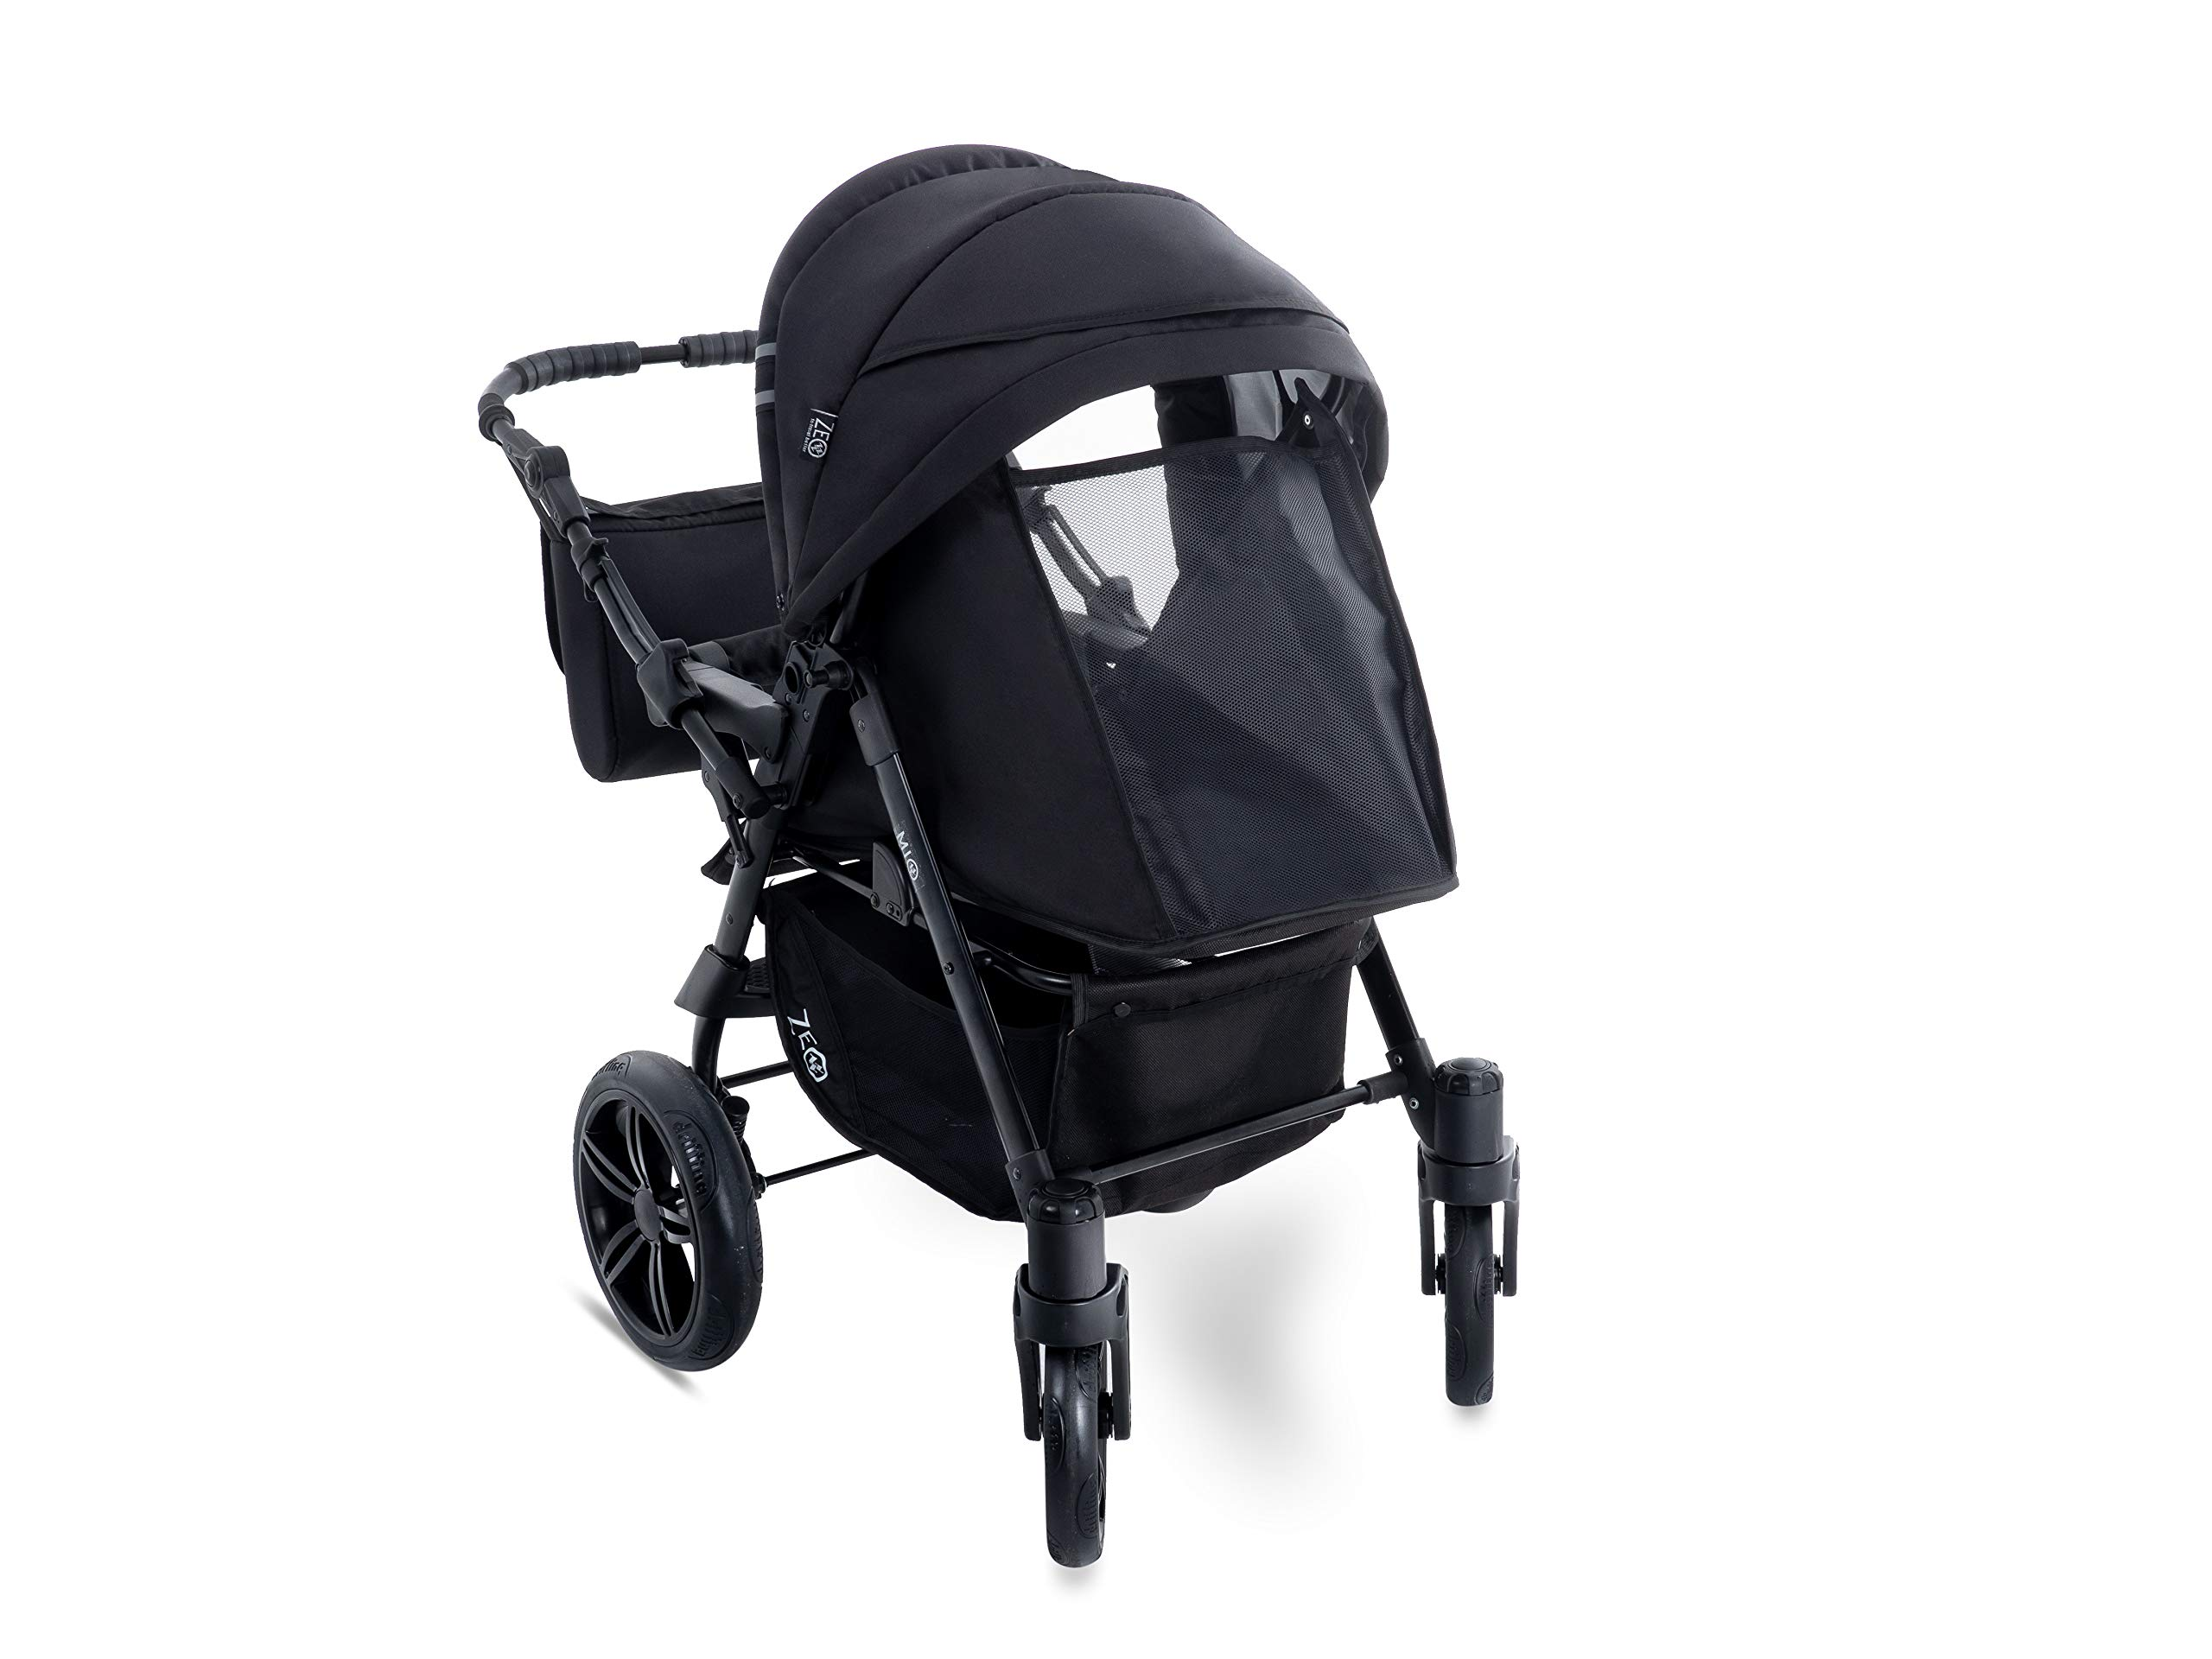 Baby Pram Zeo Mio 3in1 Set - All You Need! carrycot Gondola Buggy Sport Part Pushchair car seat (M1)  3 in 1 combination stroller complete set, with reversible handle to the buggy, child car seat or baby carriage Has 360 ° swiveling wheels, two-fold suspension, four-stage backrest, five-position adjustable footrest and a five-point safety belt The stroller can be easily converted into other functions and easy to transport 8